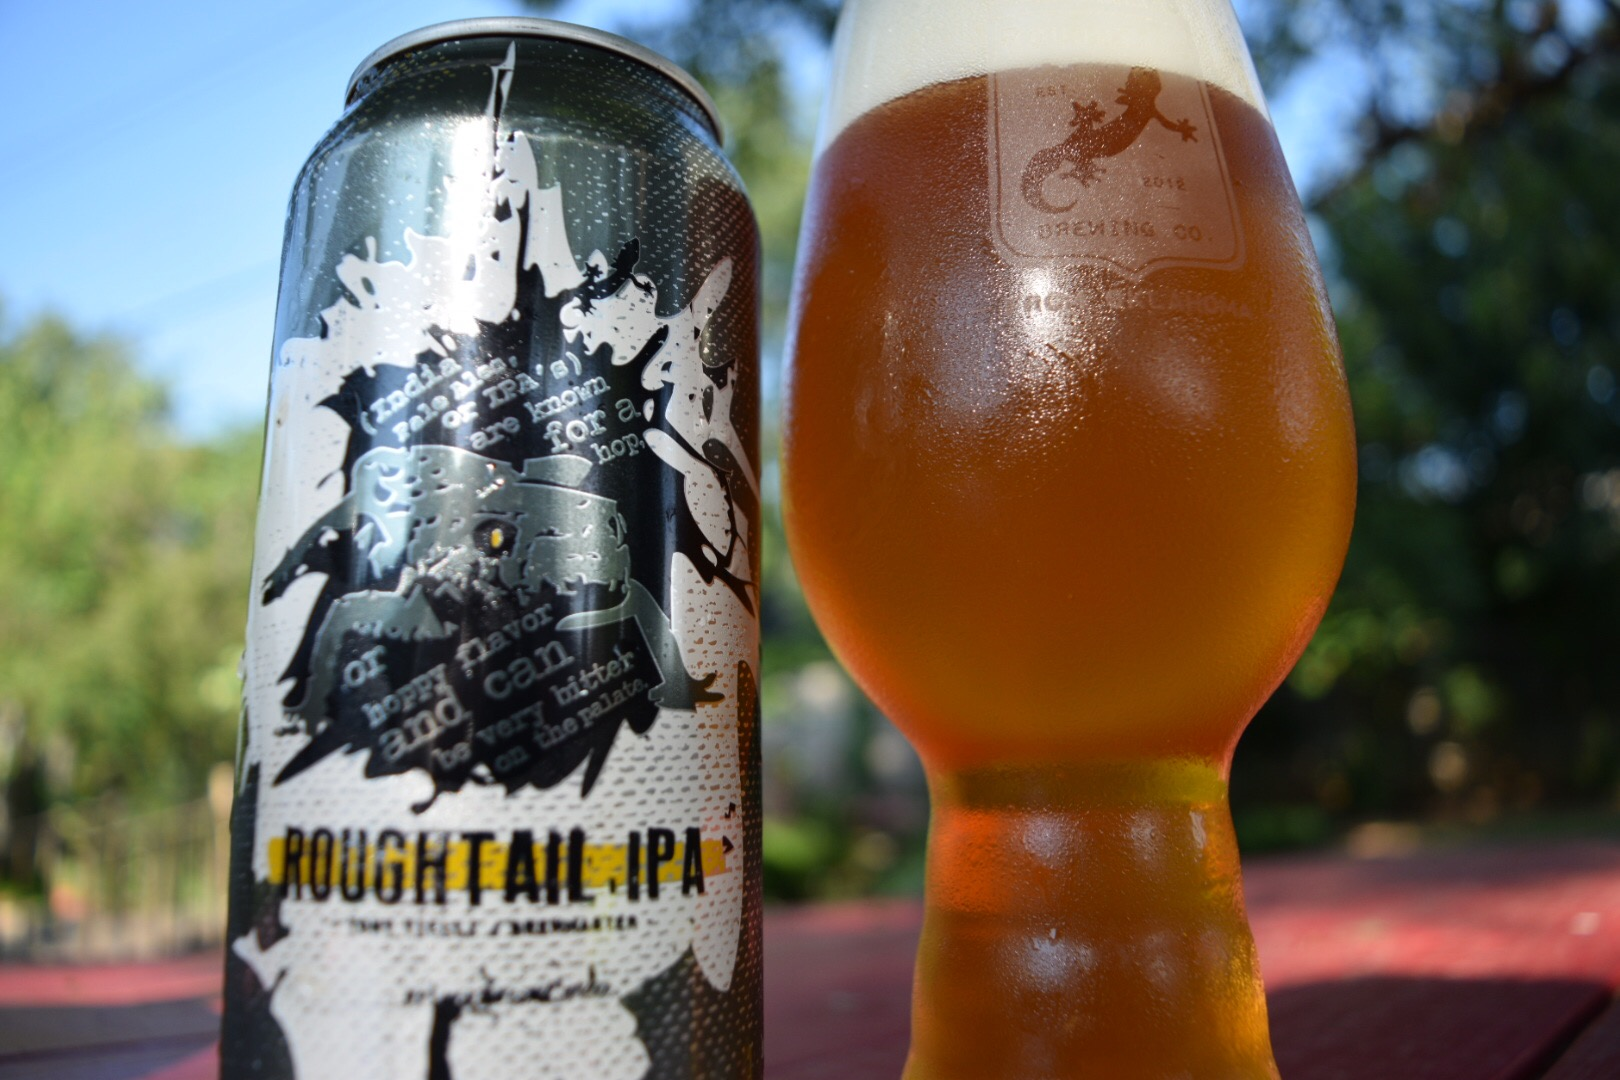 roughtail_ipa_closeup